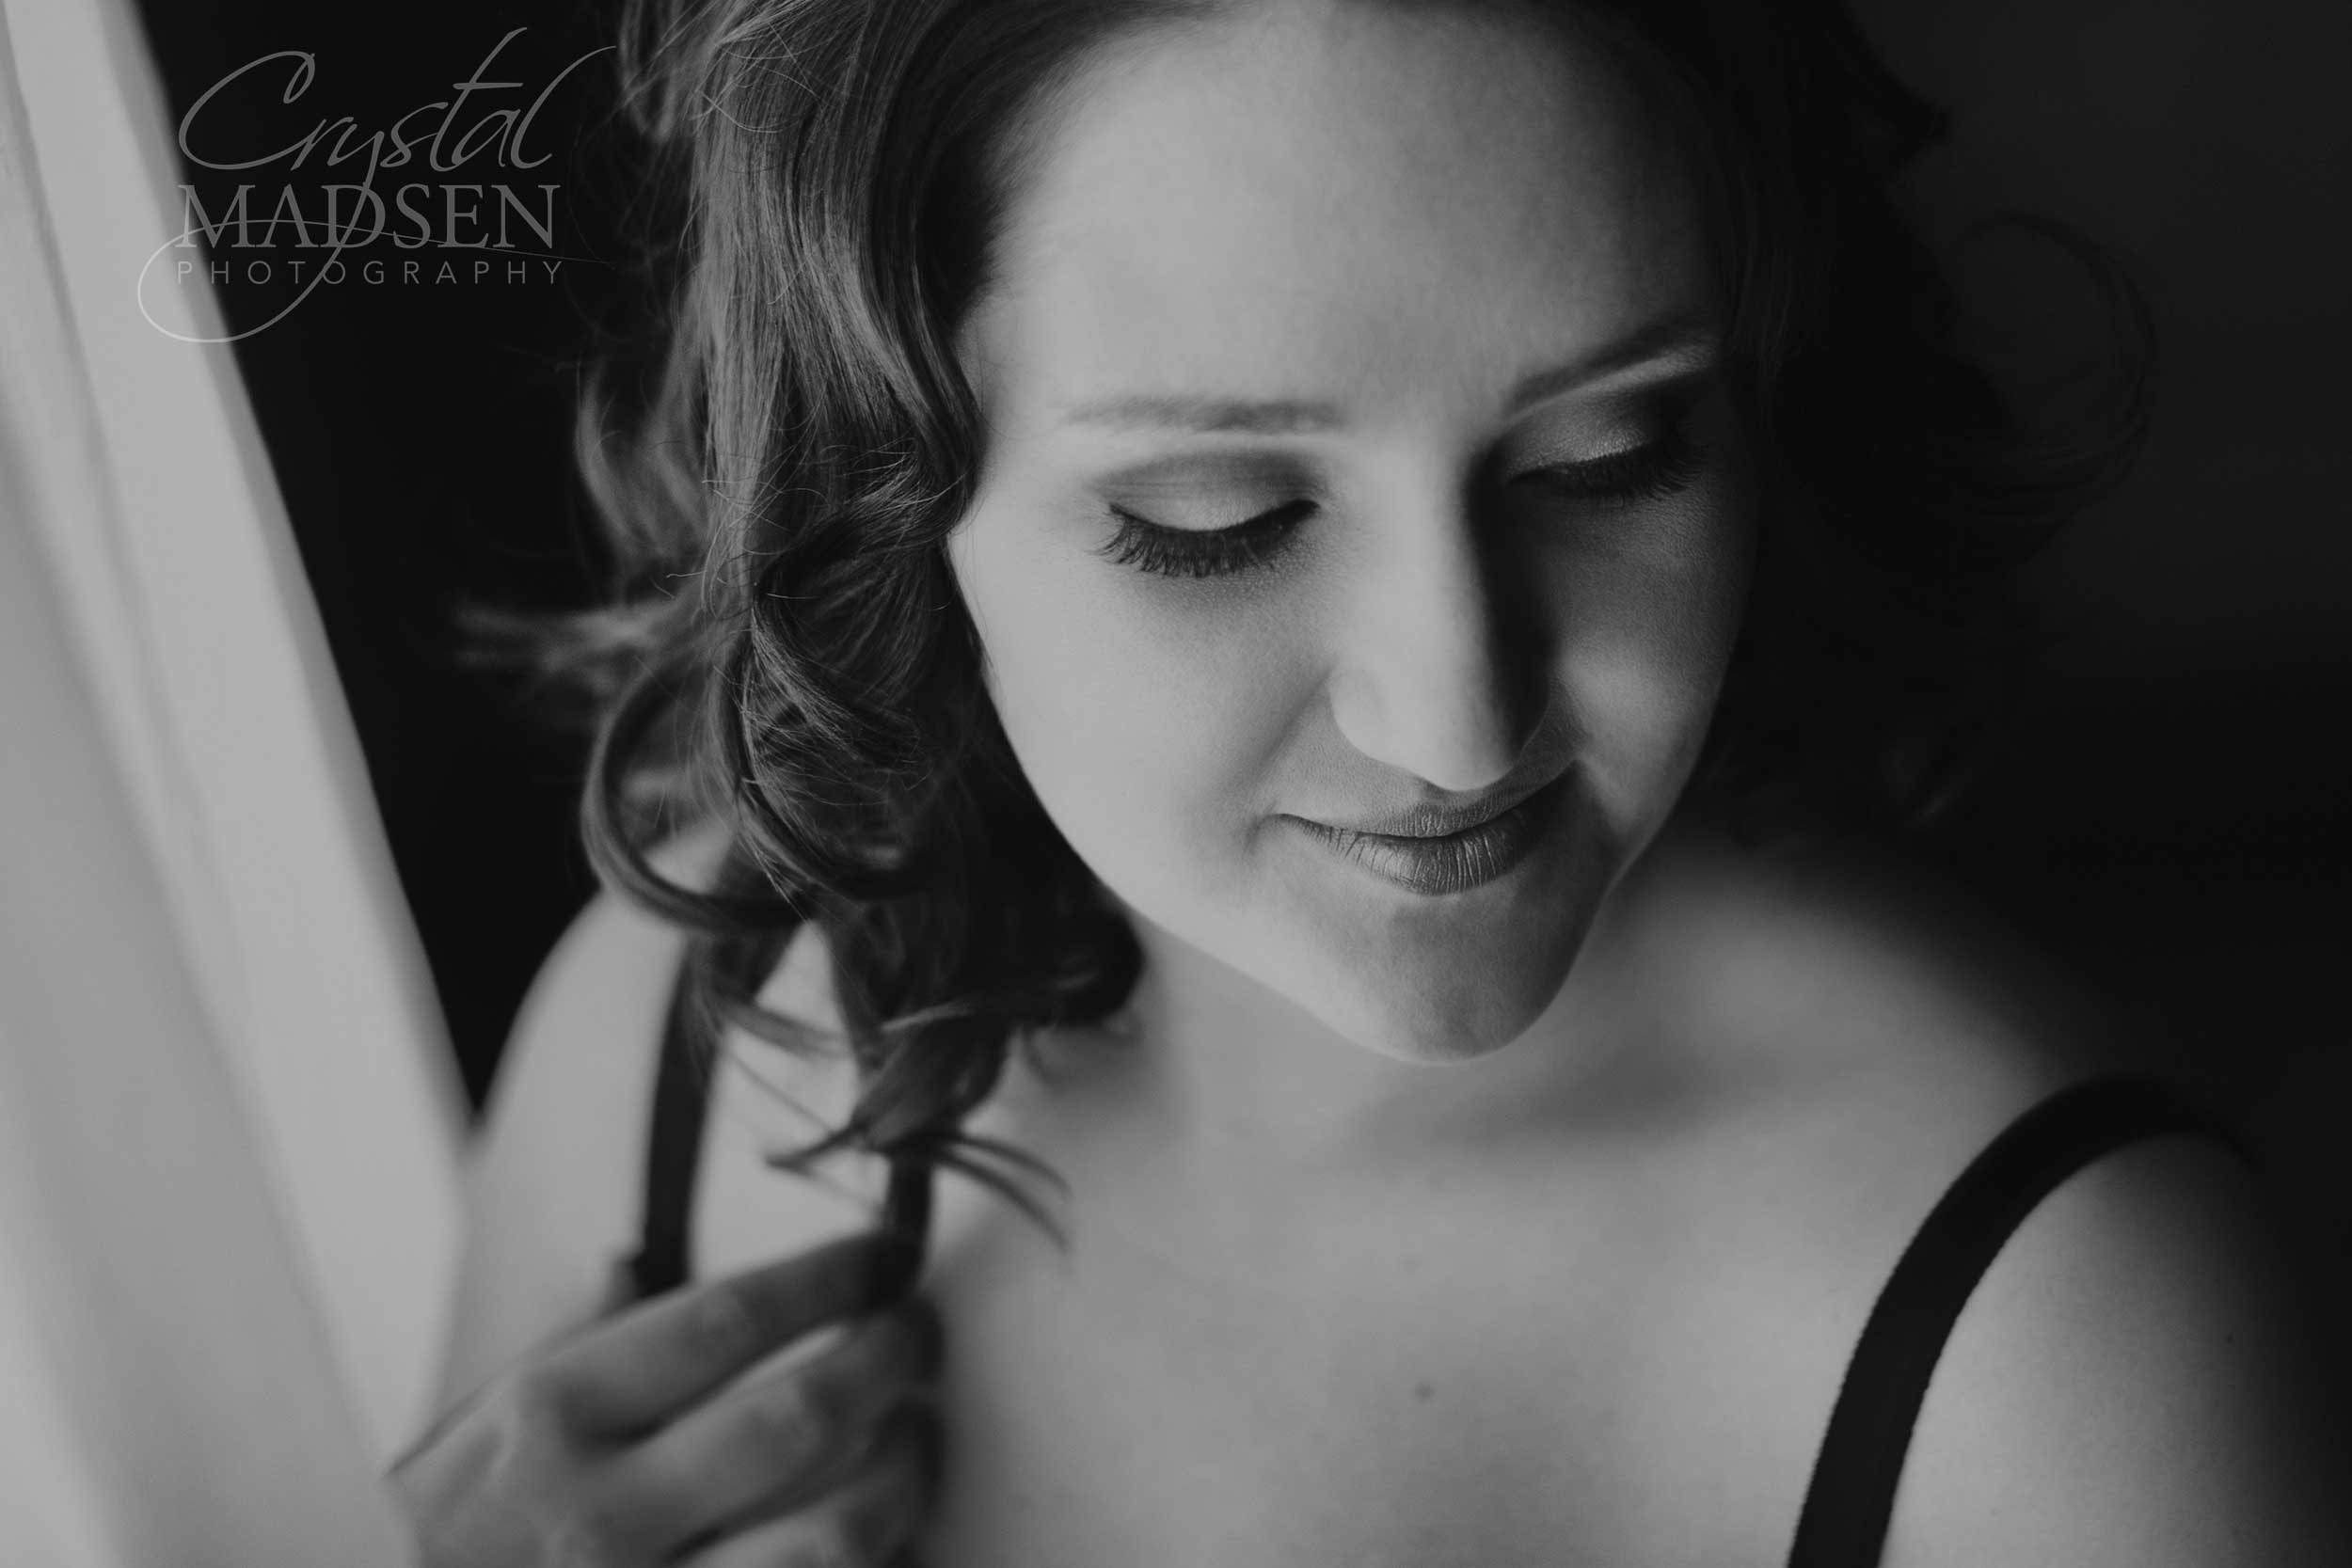 Boudoir photography in spokane, wa